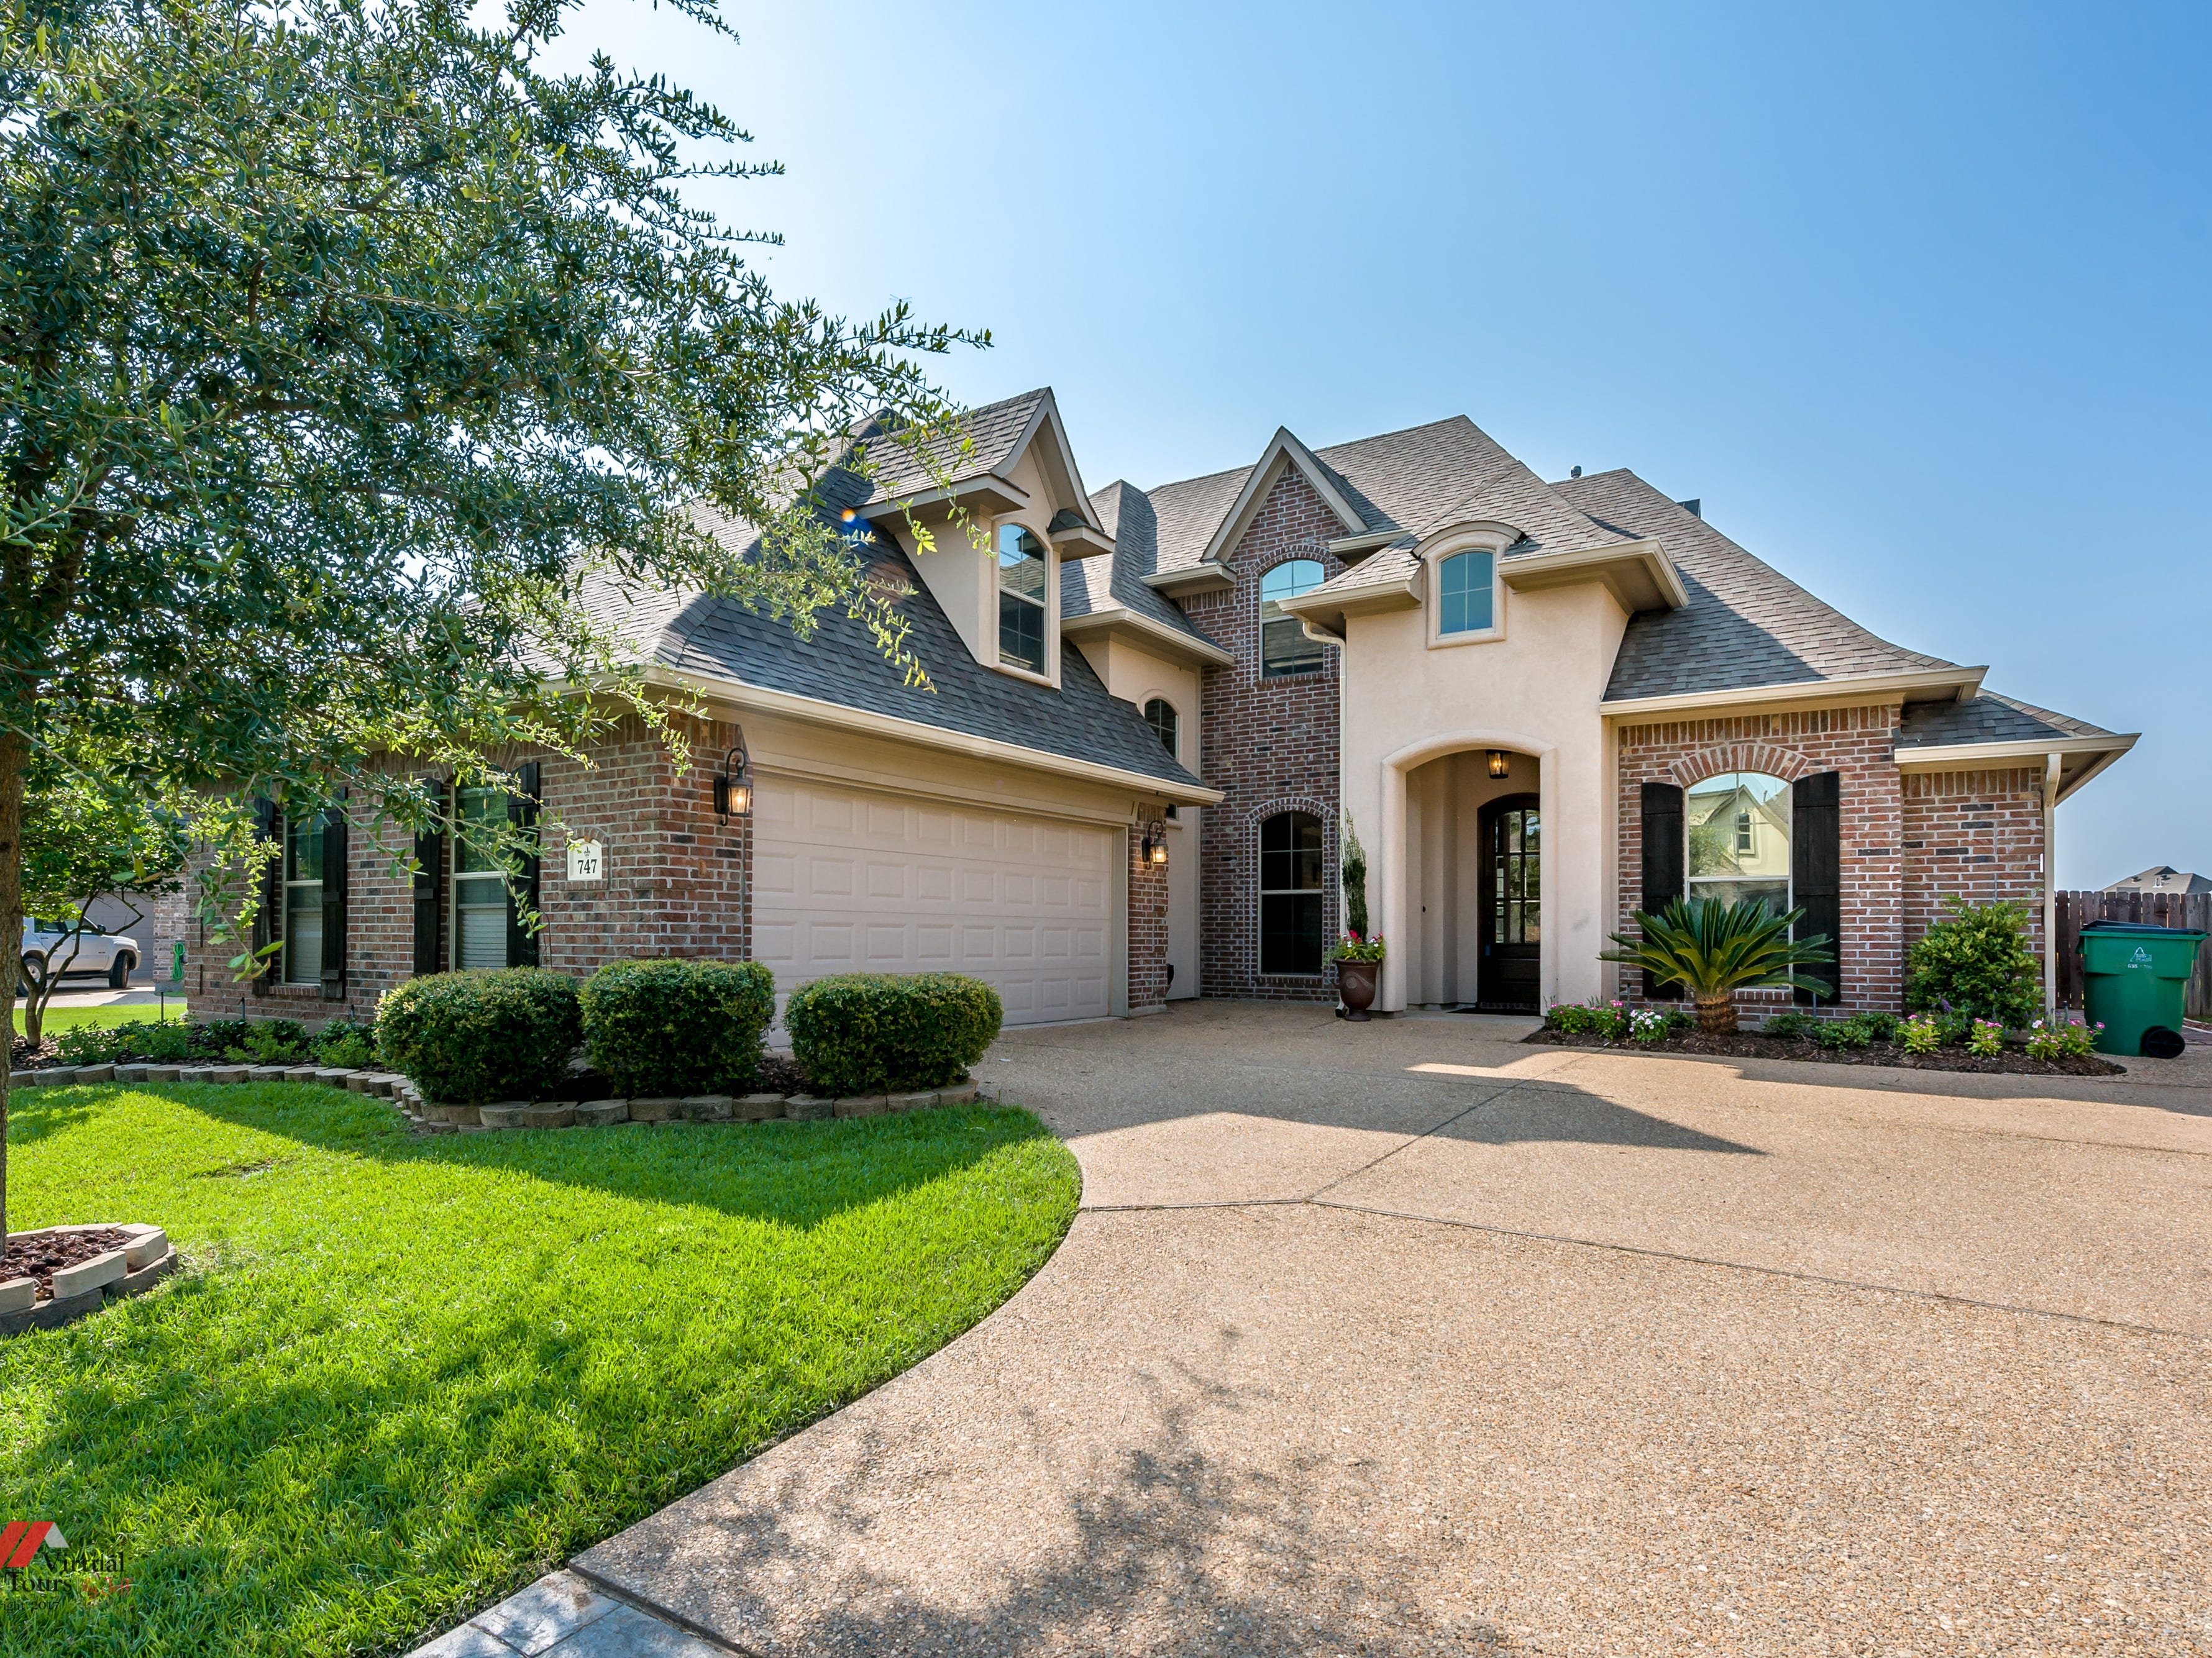 747 Dumaine Drive,   Bossier City  Price: $354,900   Details: 5 bedrooms, 3 bathrooms, 2,679 square feet  Special features: Gated St. Charles Court of Bossier with meticulous landscaping, heavy crown moulding, exquisite trim work.   Contact: Chris Holloway, 213-1555